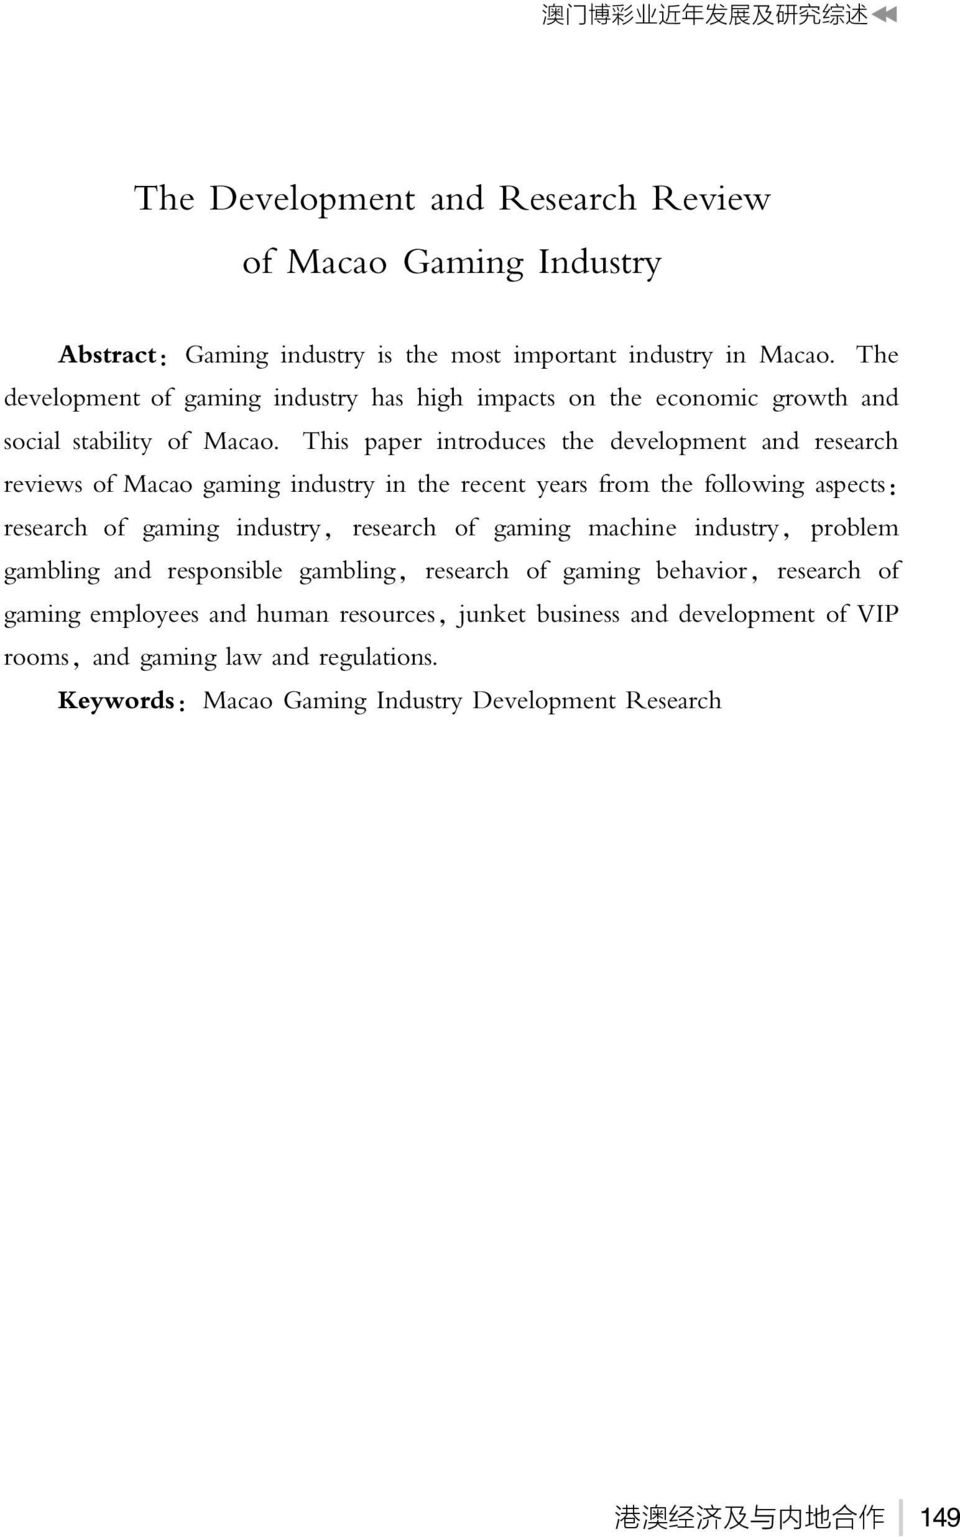 from the following aspects: research of gaming industry, research of gaming machine industry, problem gambling and responsible gambling, research of gaming behavior, research of